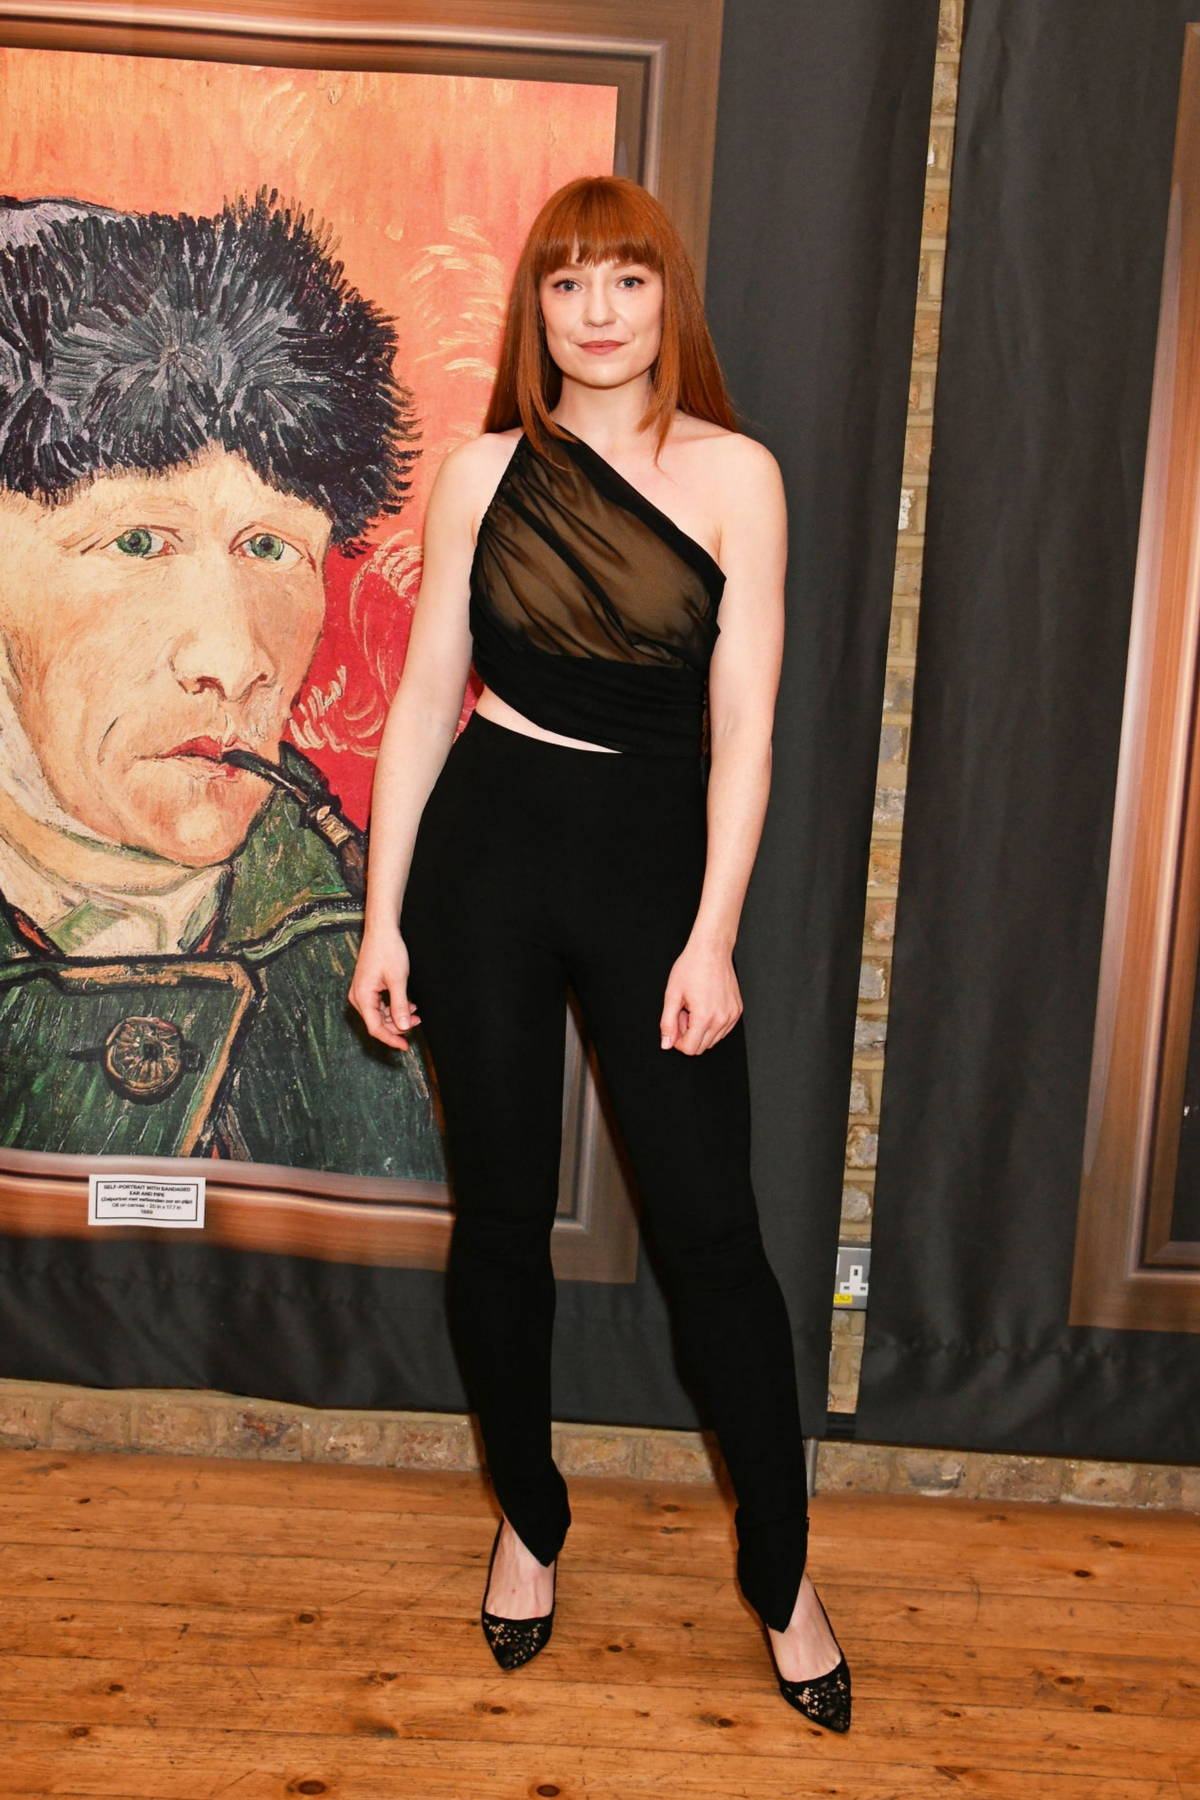 Nicola Roberts attends the launch of Van Gogh: The Immersive Experience at The Old Truman Brewery in London, UK